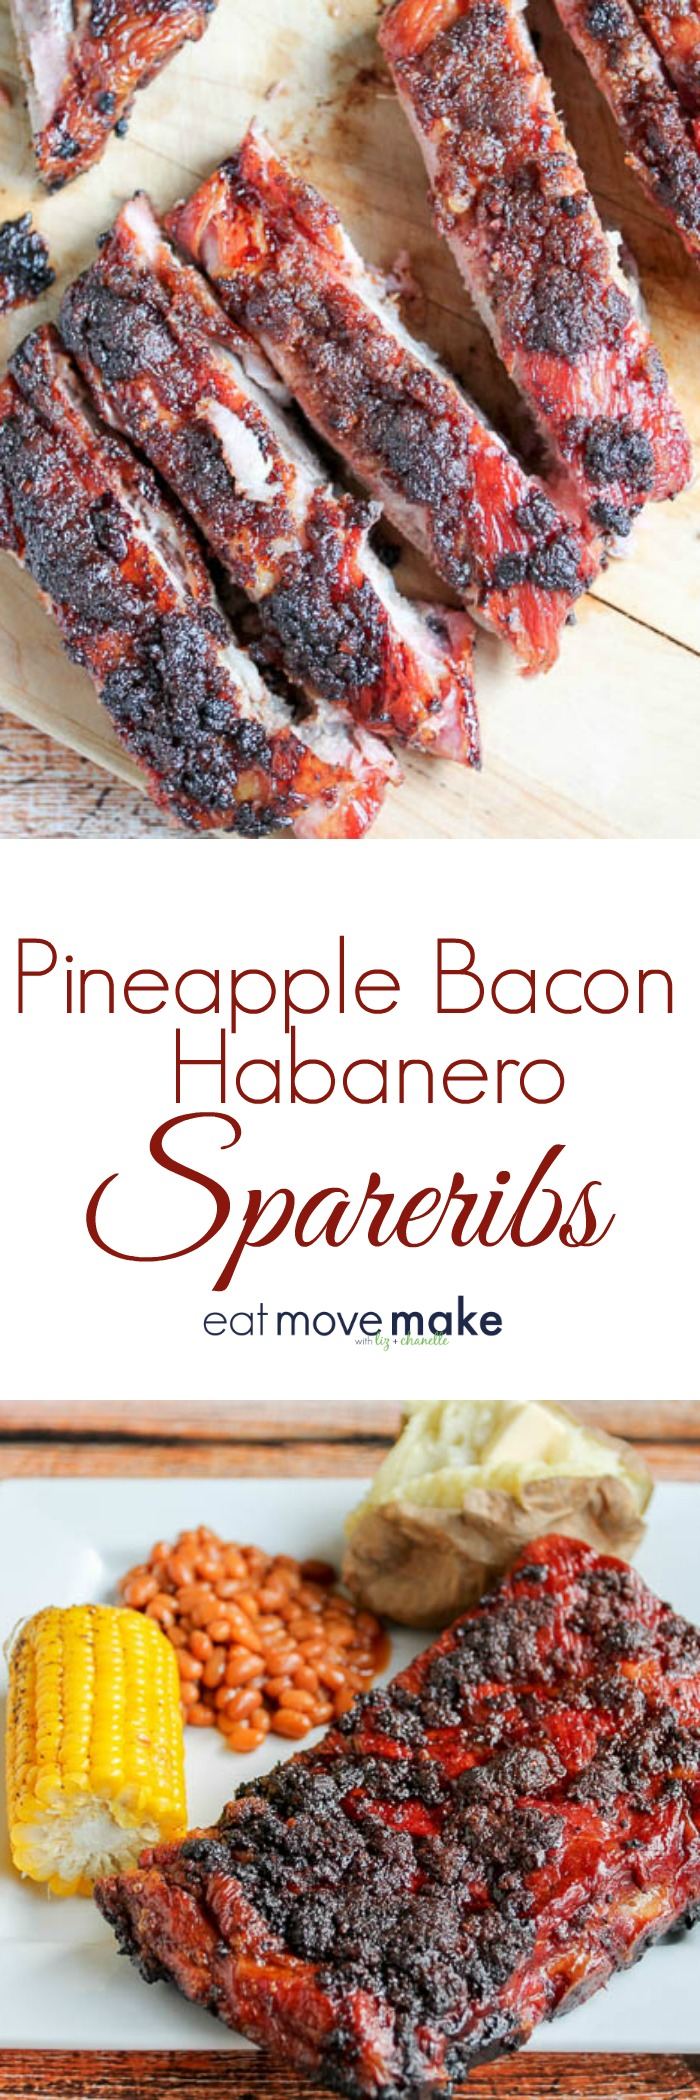 Pineapple Bacon Habanero Spareribs